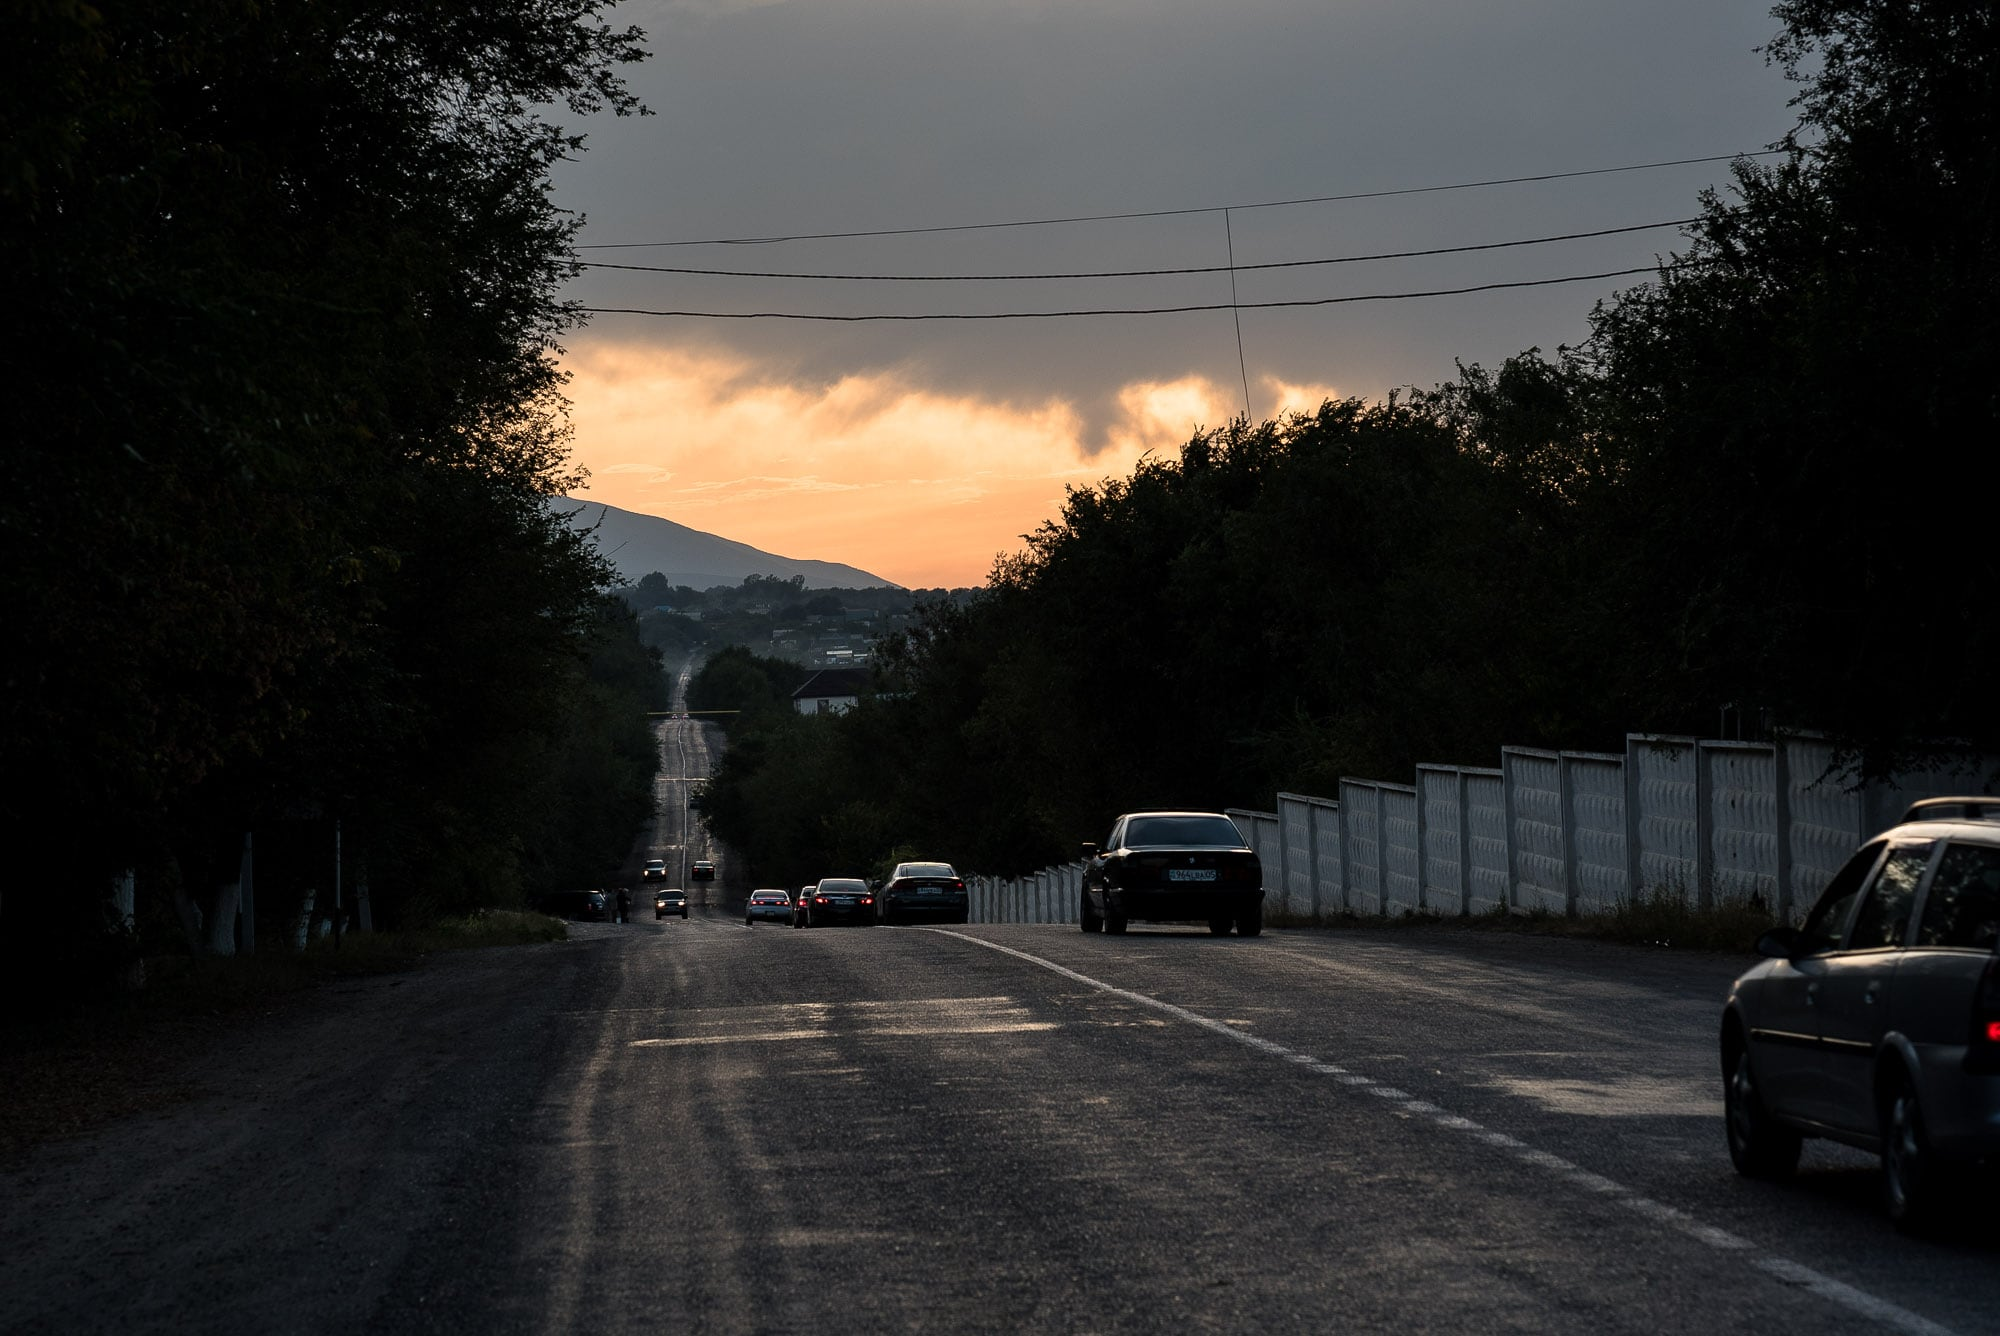 dusk on the road